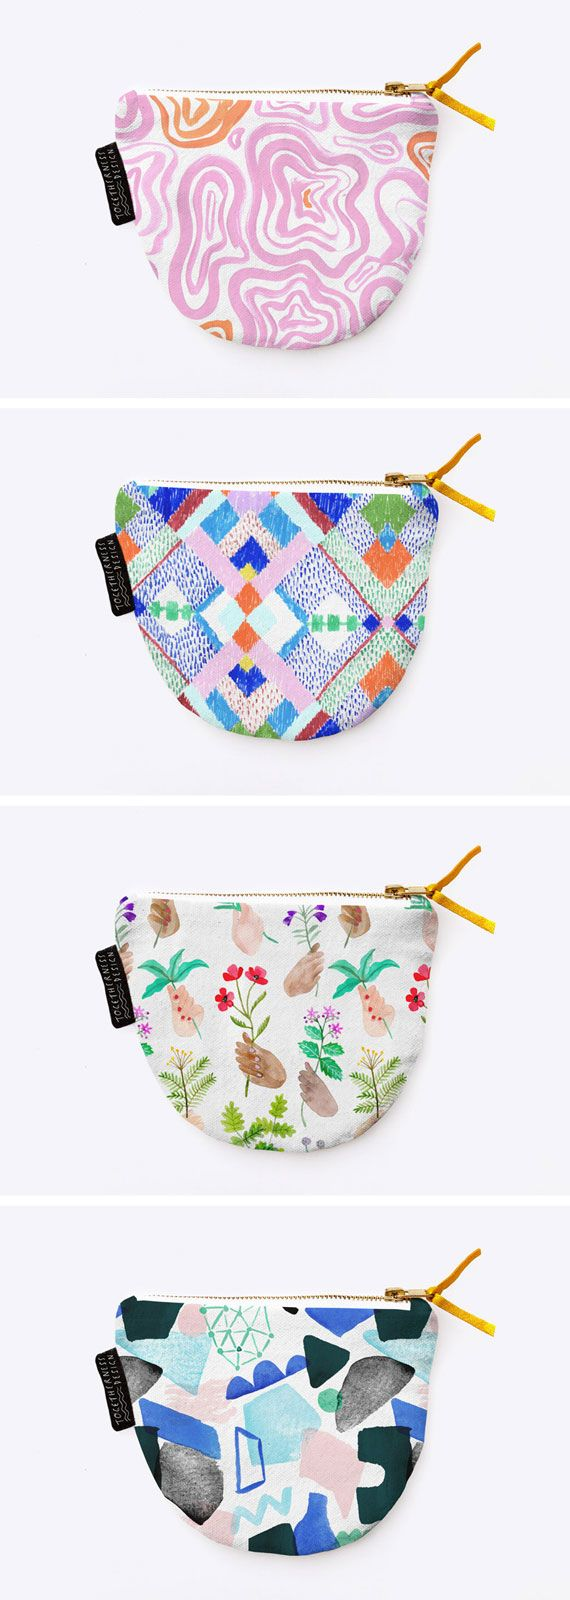 Step up your coin purse game with a patterned pouch by Melbourne-based illustrator and maker, Esther Sandler. #EtsyFinds